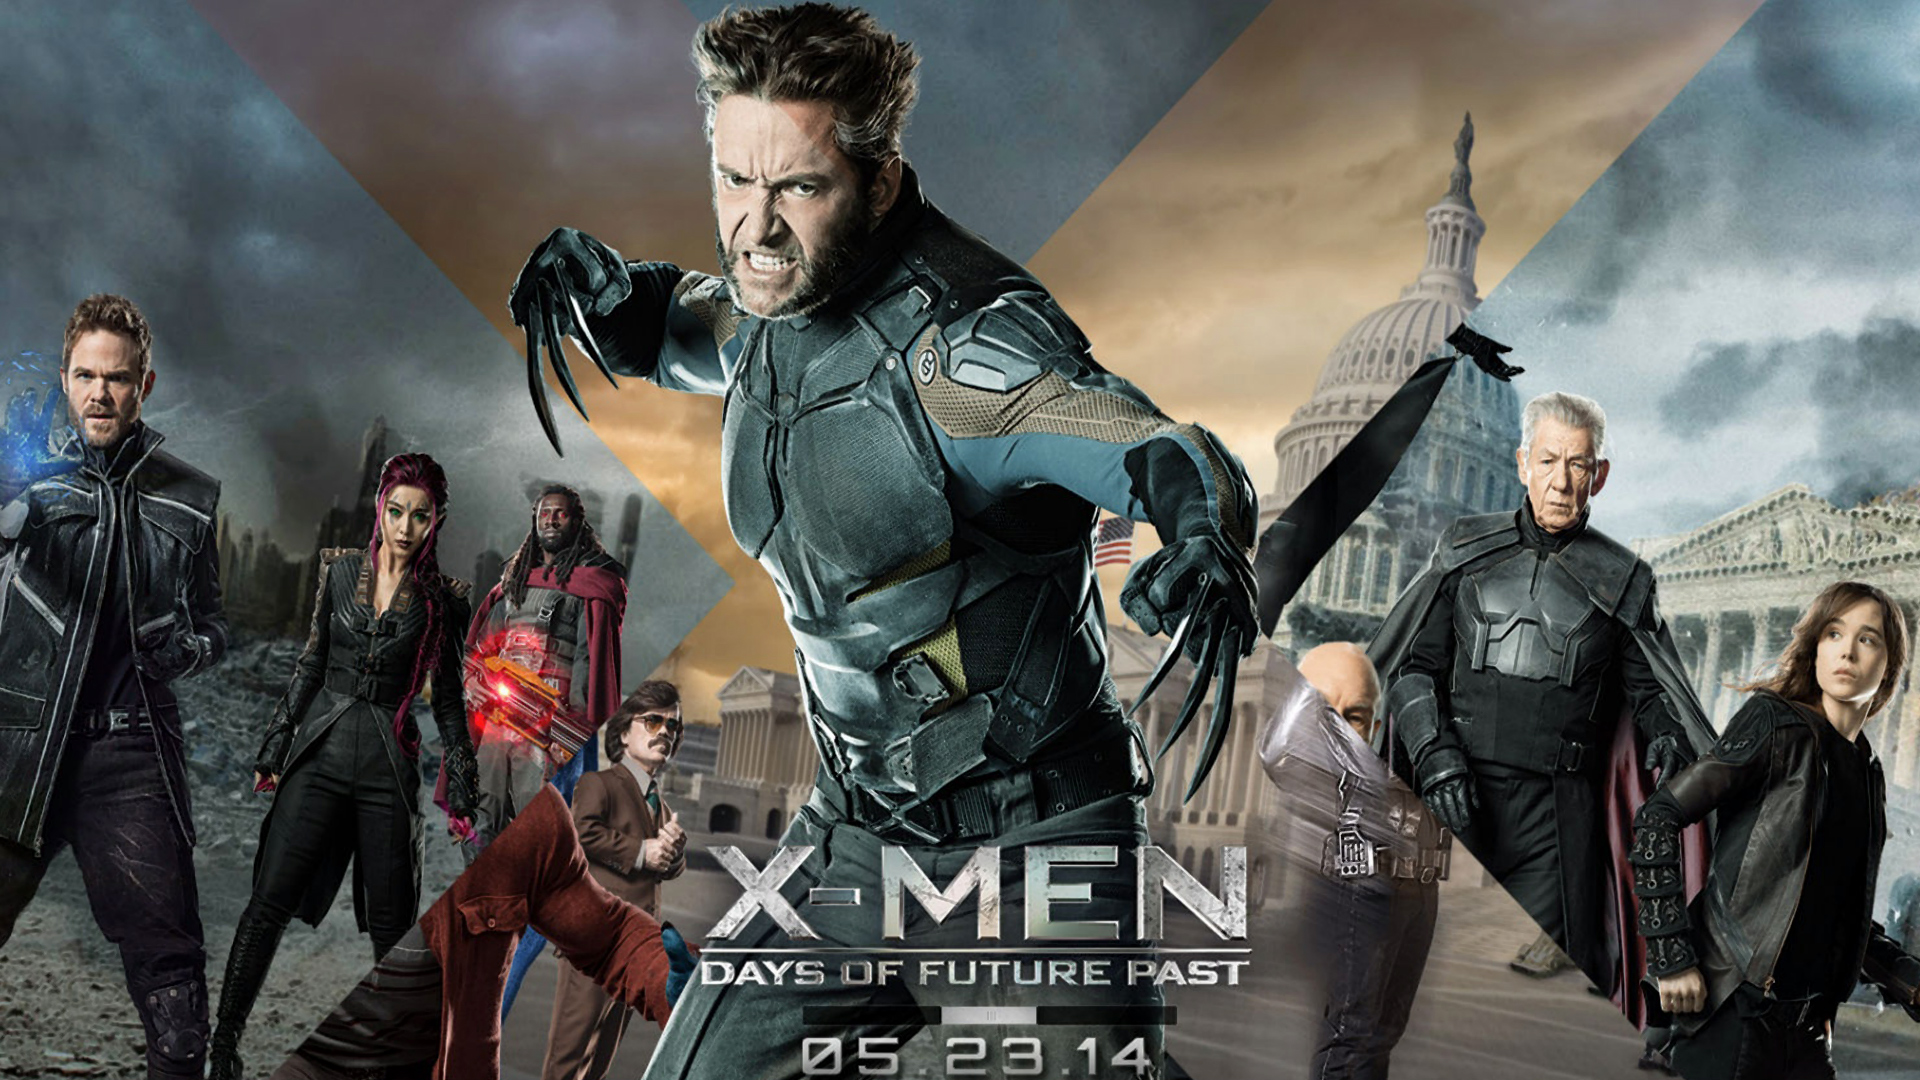 x-men-days-of-future-past-2014-movie-hd-1920x1080